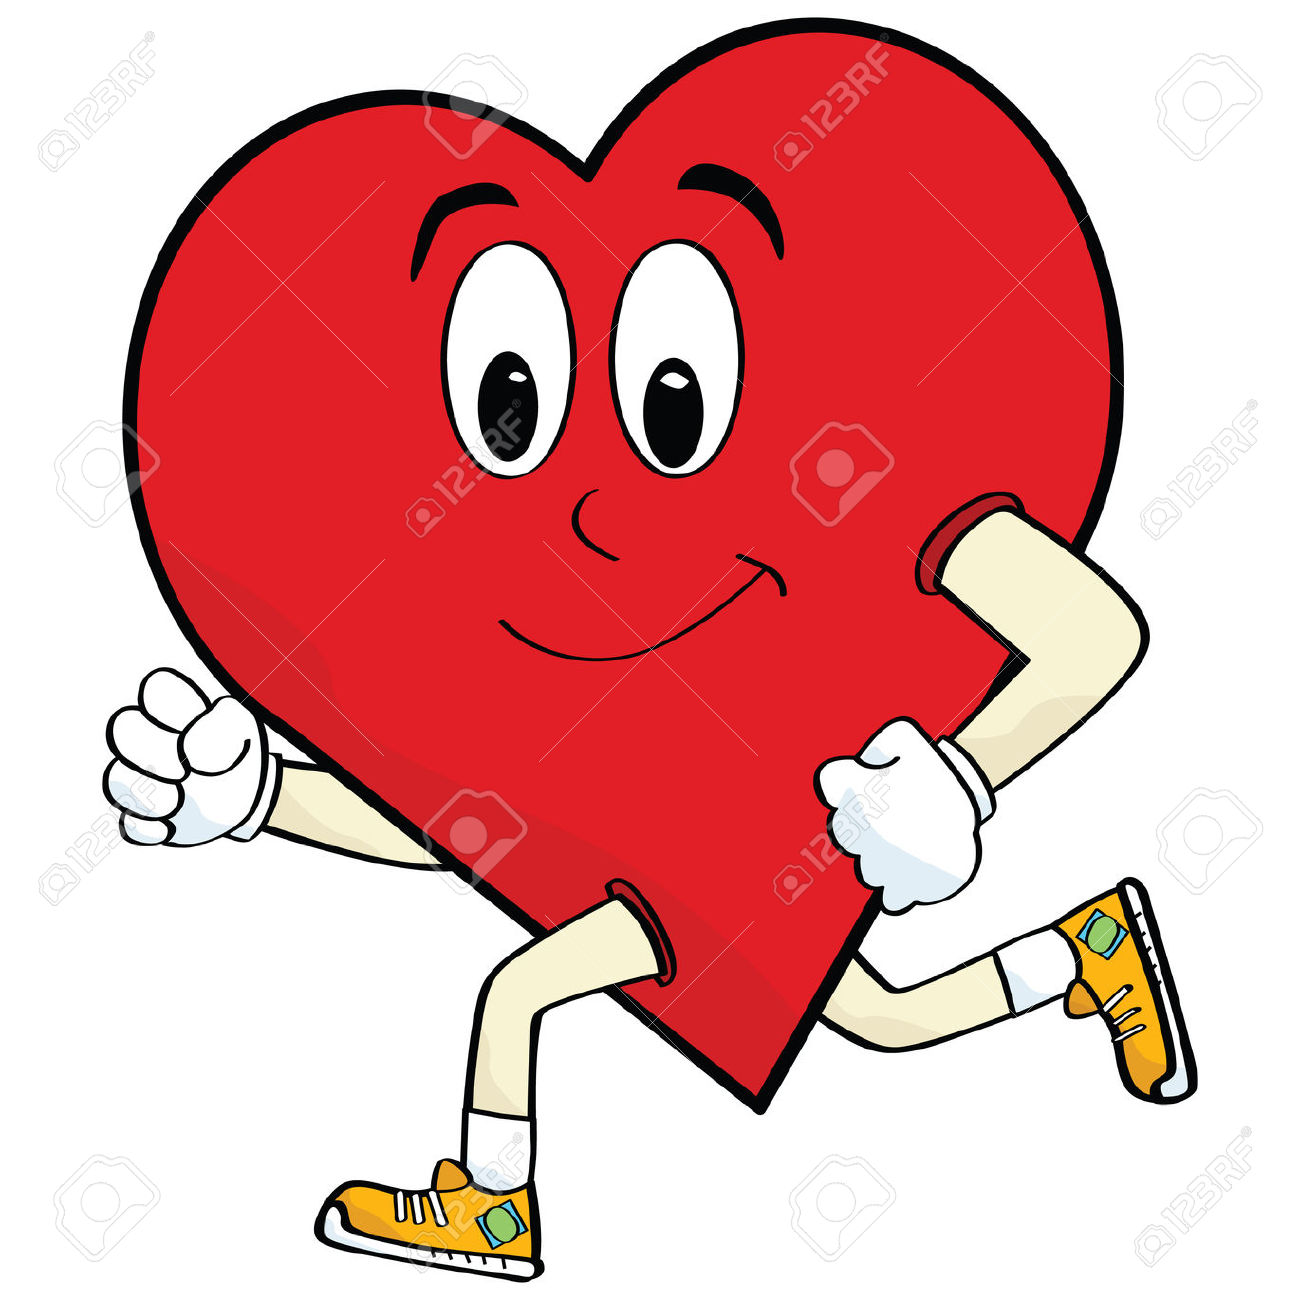 Healthy heart clipart 6 » Clipart Station.